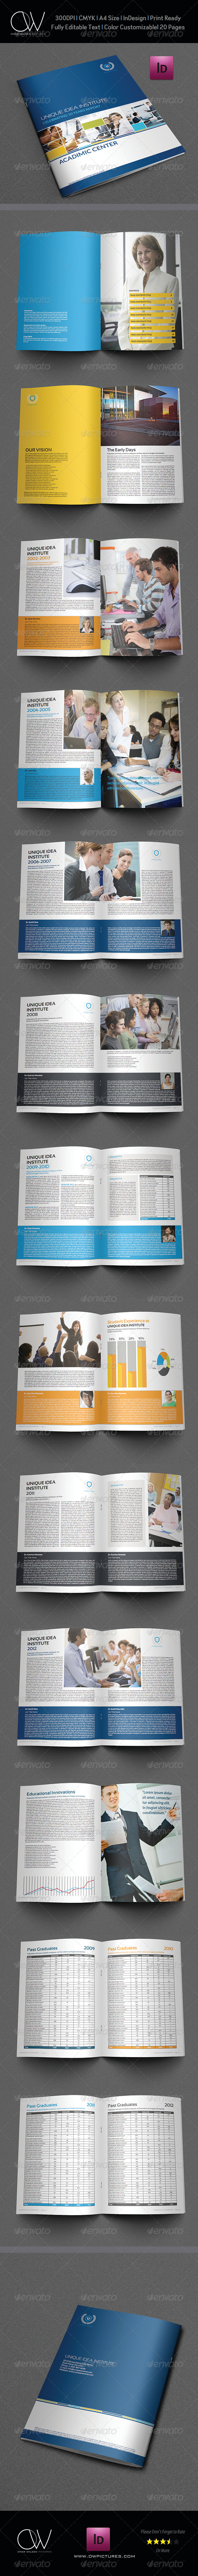 GraphicRiver Training Company Brochure Template 28 Pages 5469105